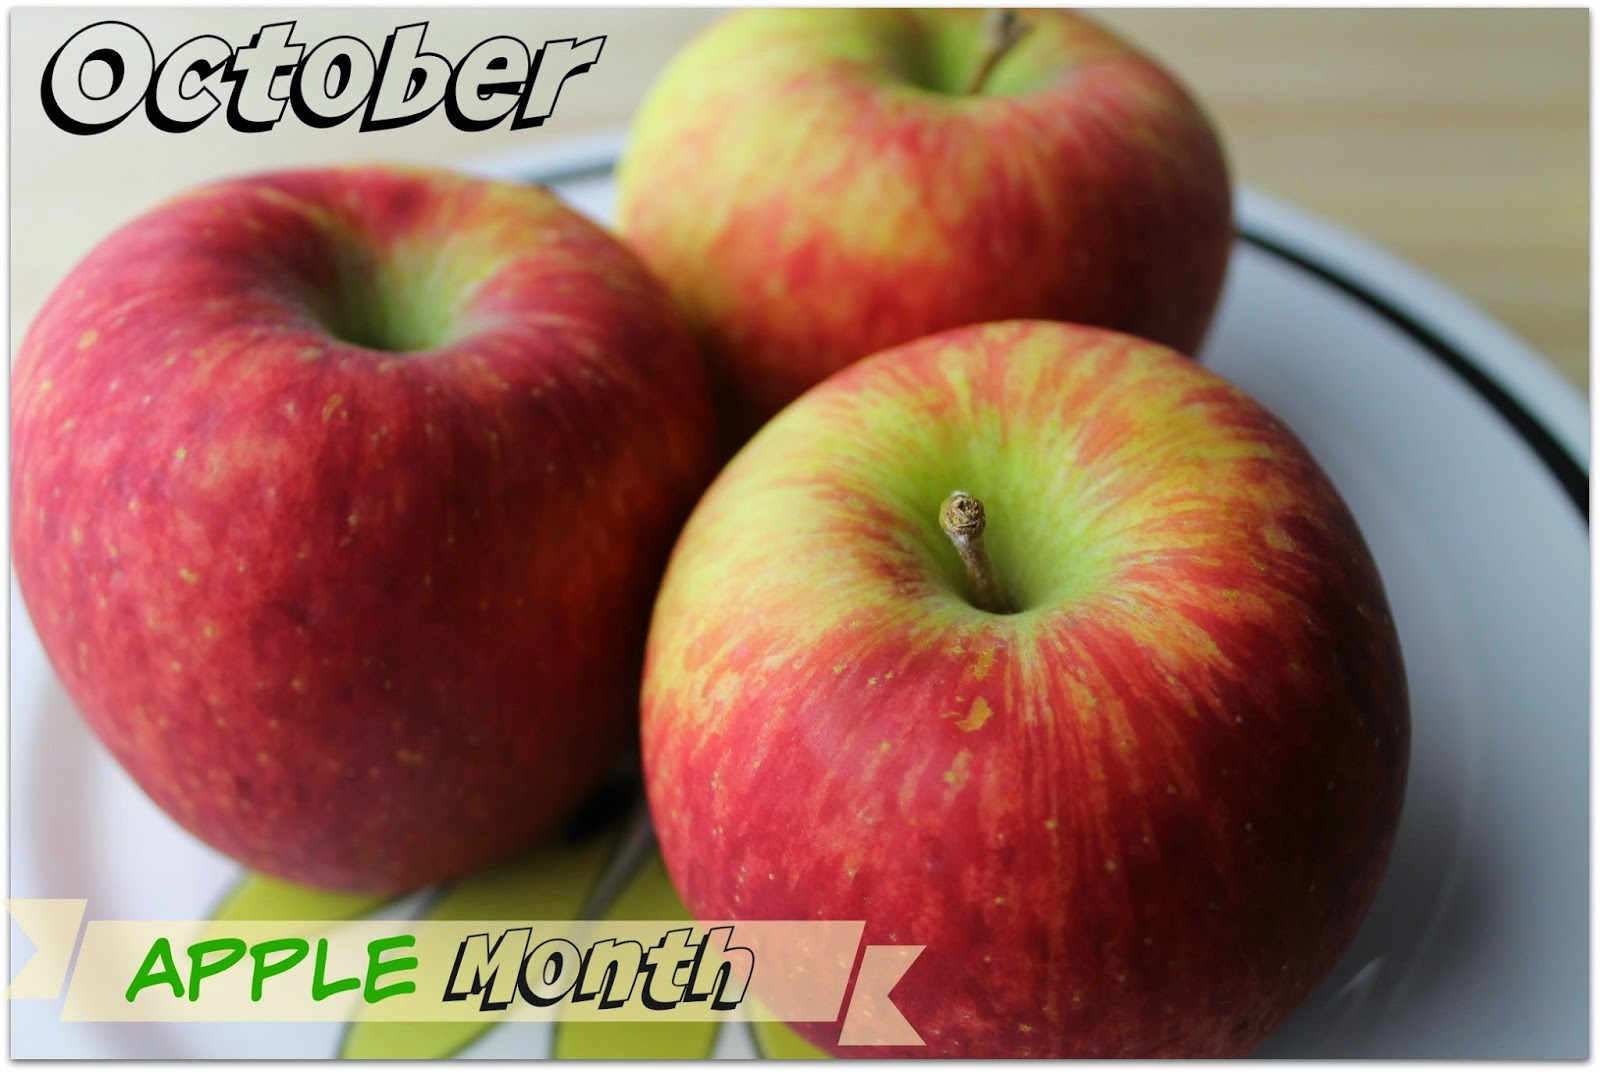 Cooking with Apples - Apple Month